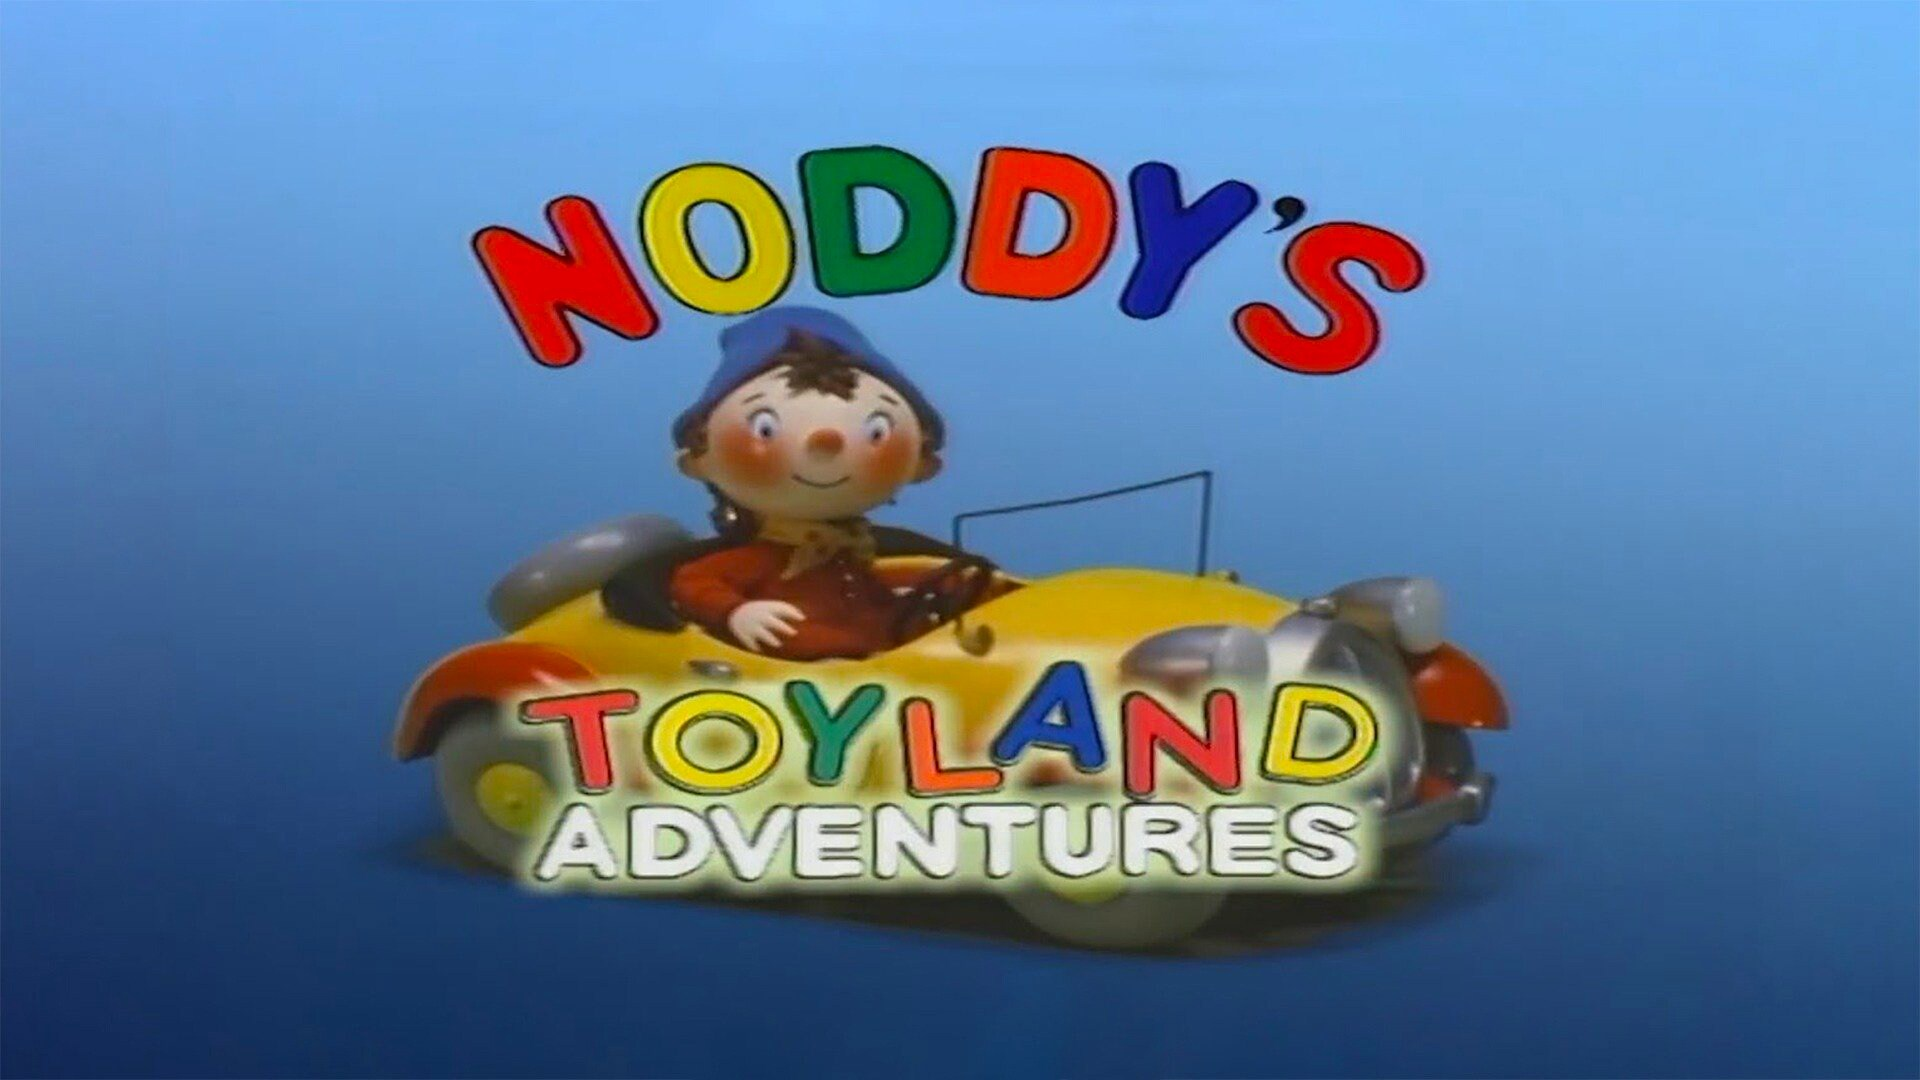 Noddy and His Alarm Clock